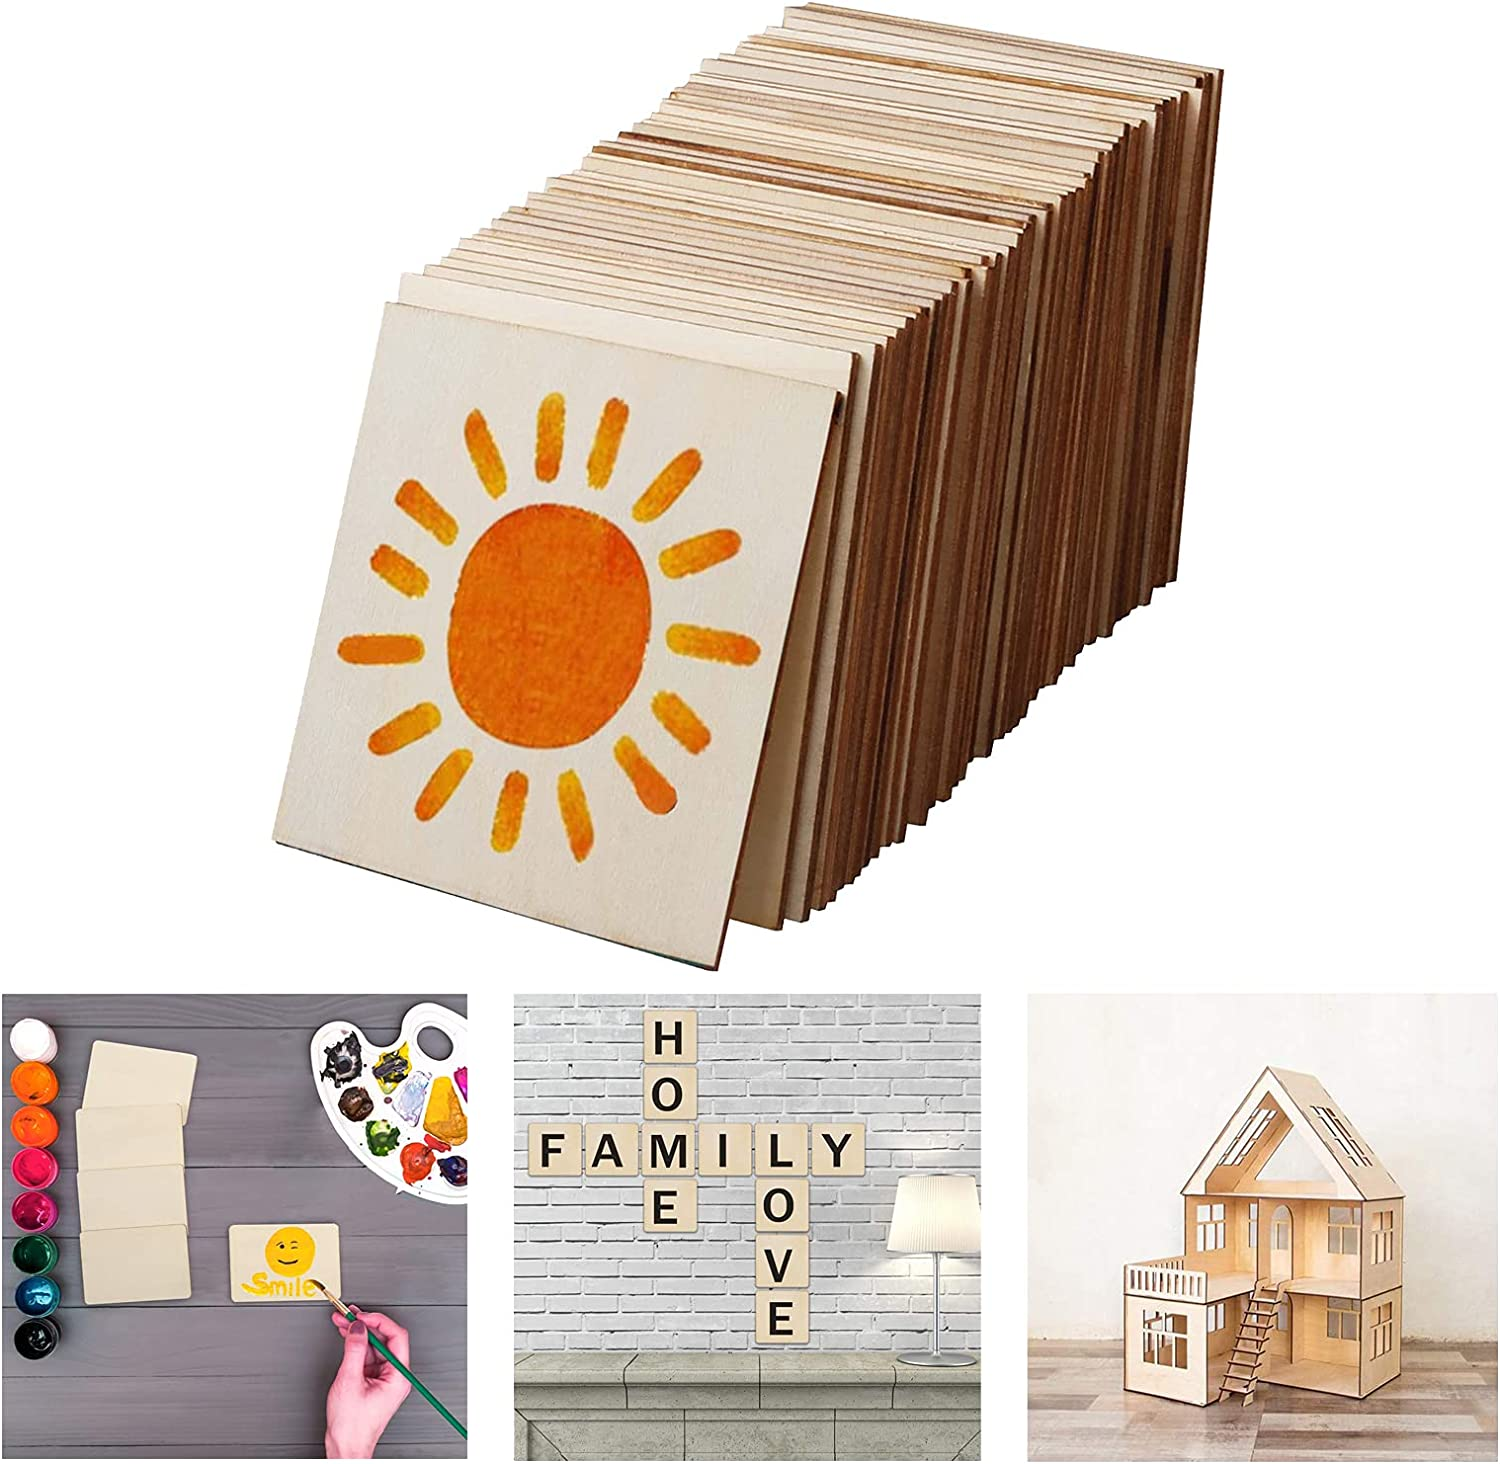 50PCS Unfinished Wood Slices for Scrabble Wall Art, 4 x 4 Inch Square Blank Natural Wooden Board Pieces for Coasters, DIY Crafts, Painting, Carving, Home Decor (0.1 inch Thick)